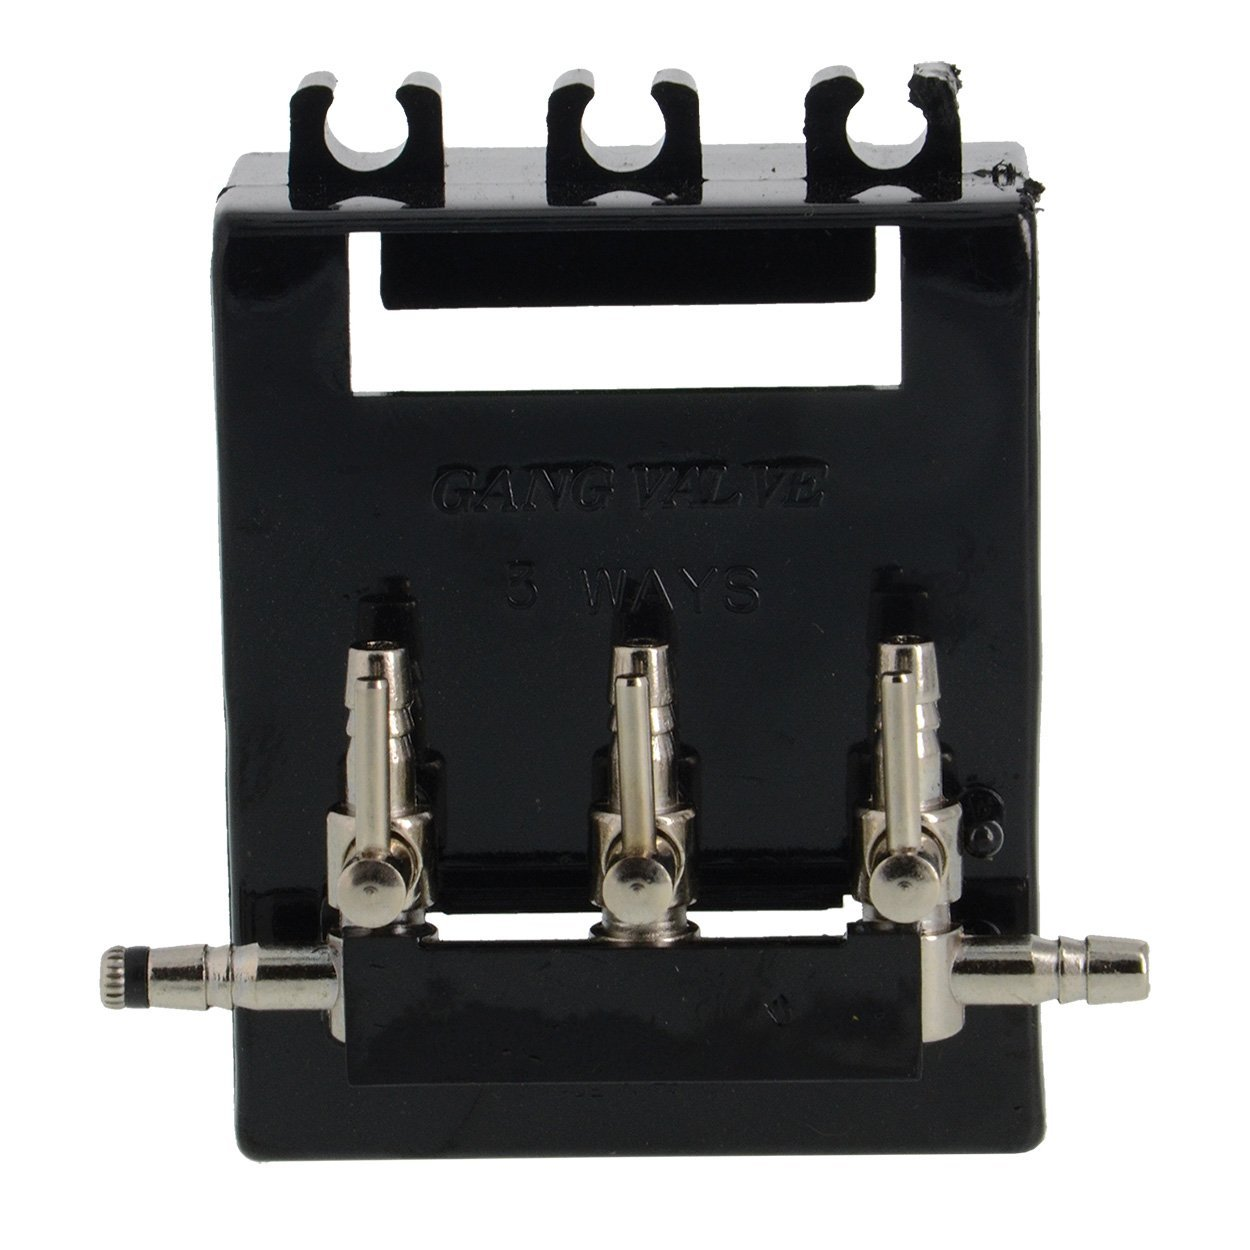 Ista Metal Air Valve - 5 Outlet